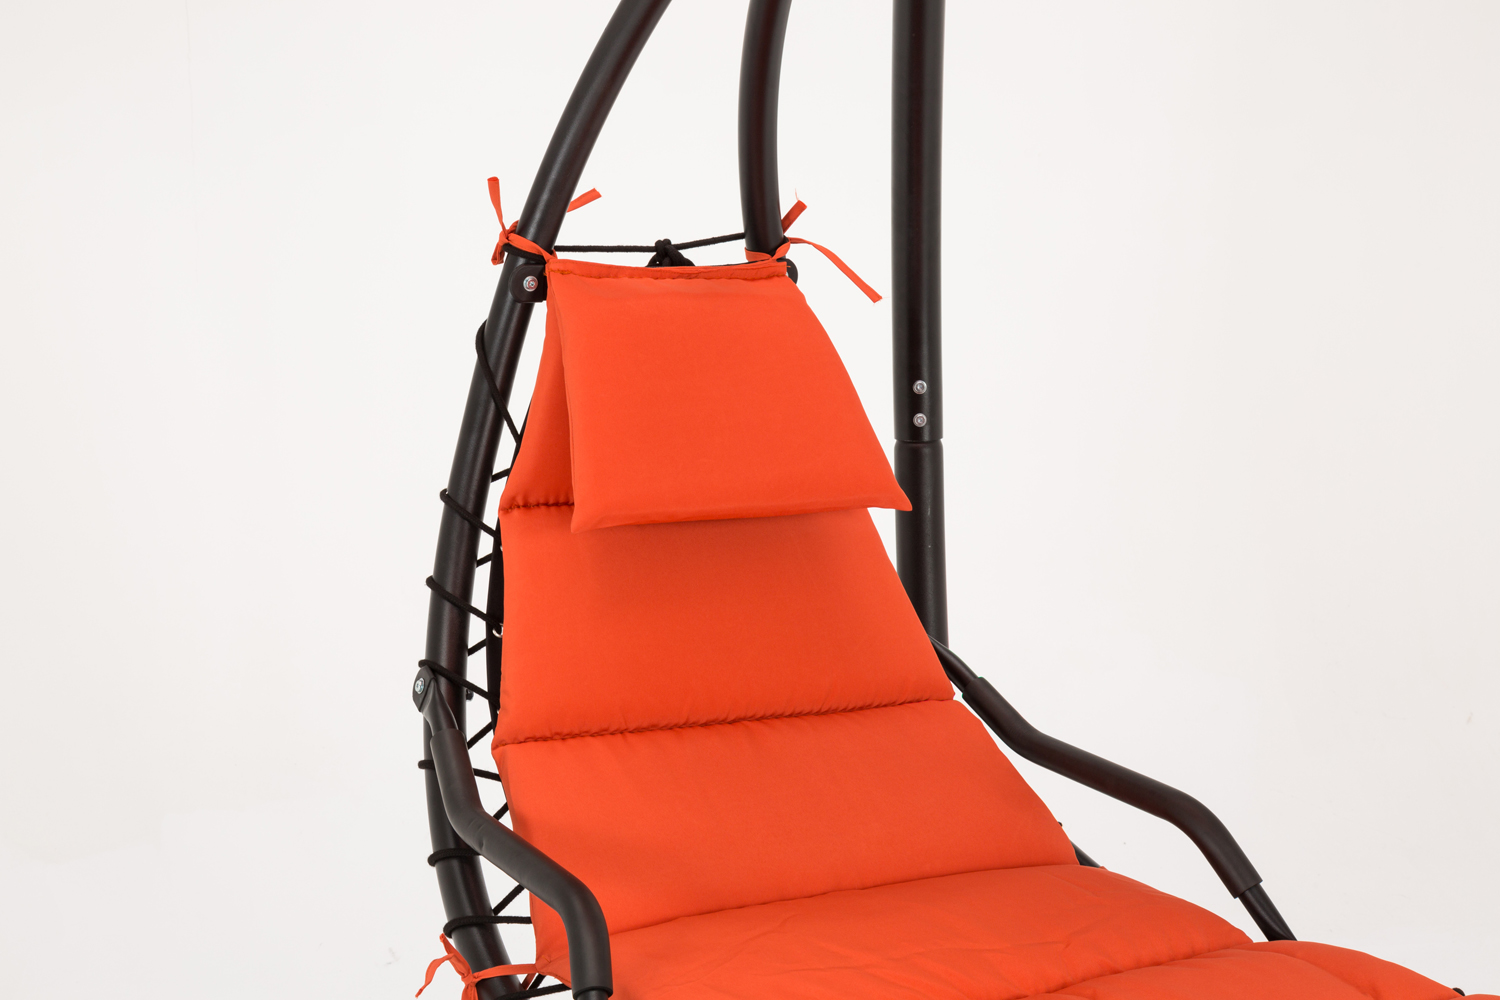 hanging umbrella chair stool target chaise lounger arc stand air porch swing